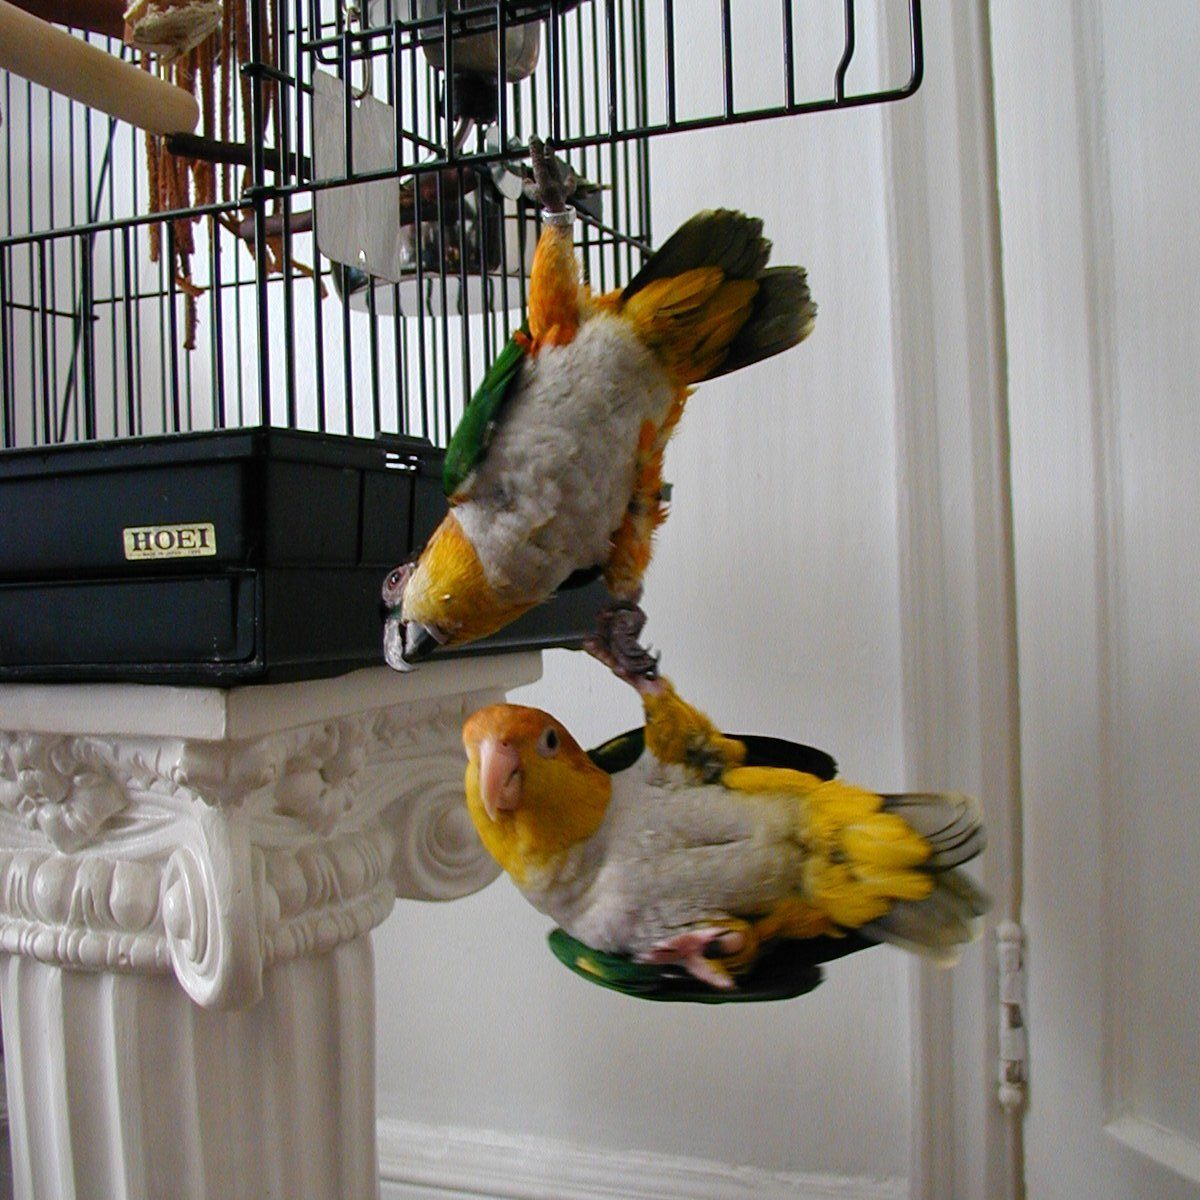 one parrot hanging onto another parrot who is hanging onto the bars of their open cage